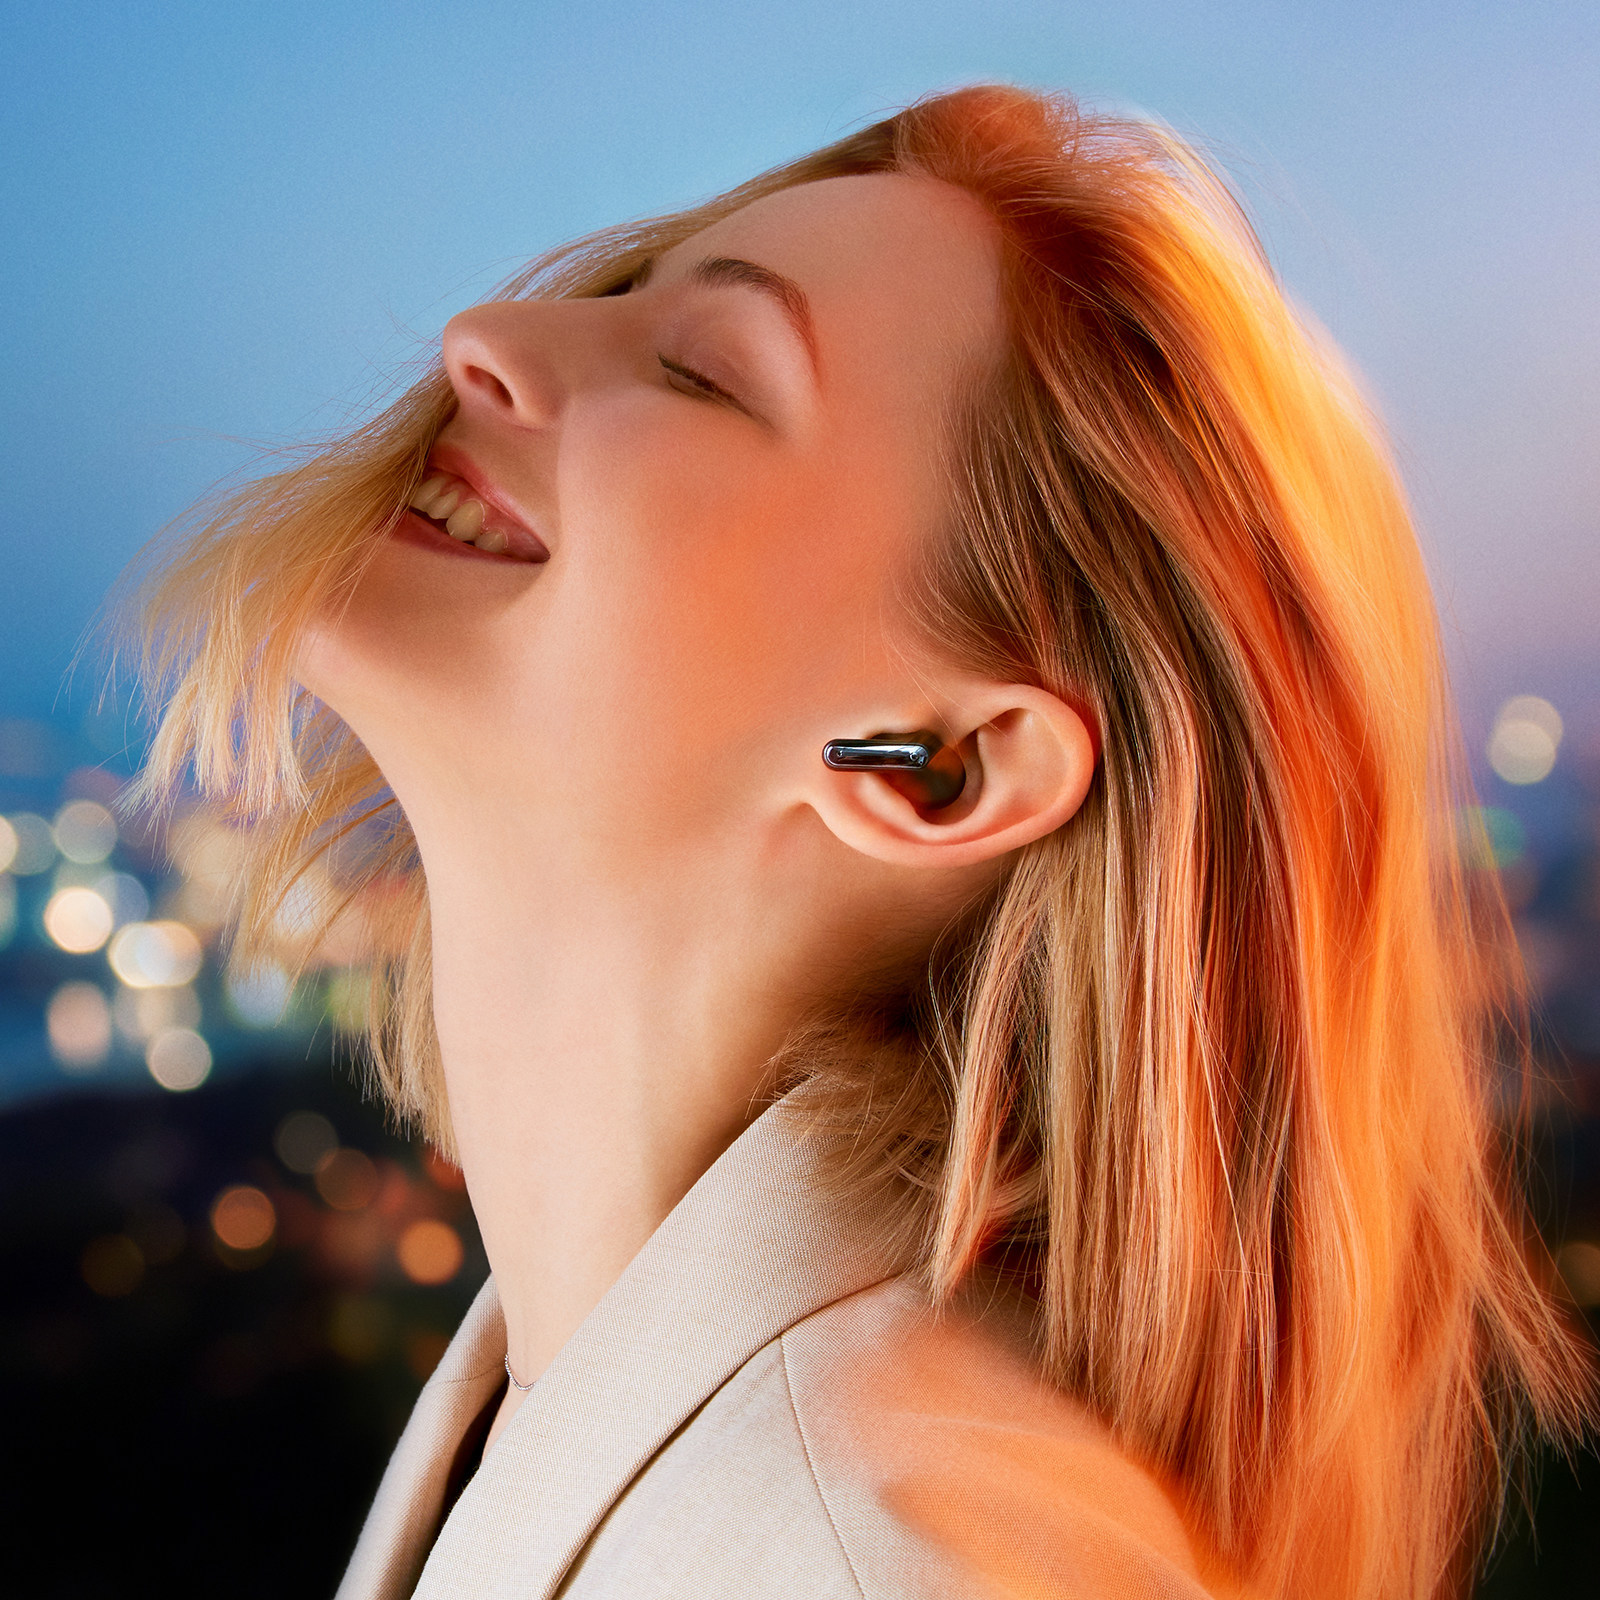 LG USA Announces New Tone Free FP8 Wireless Earbud Pricing & Availability